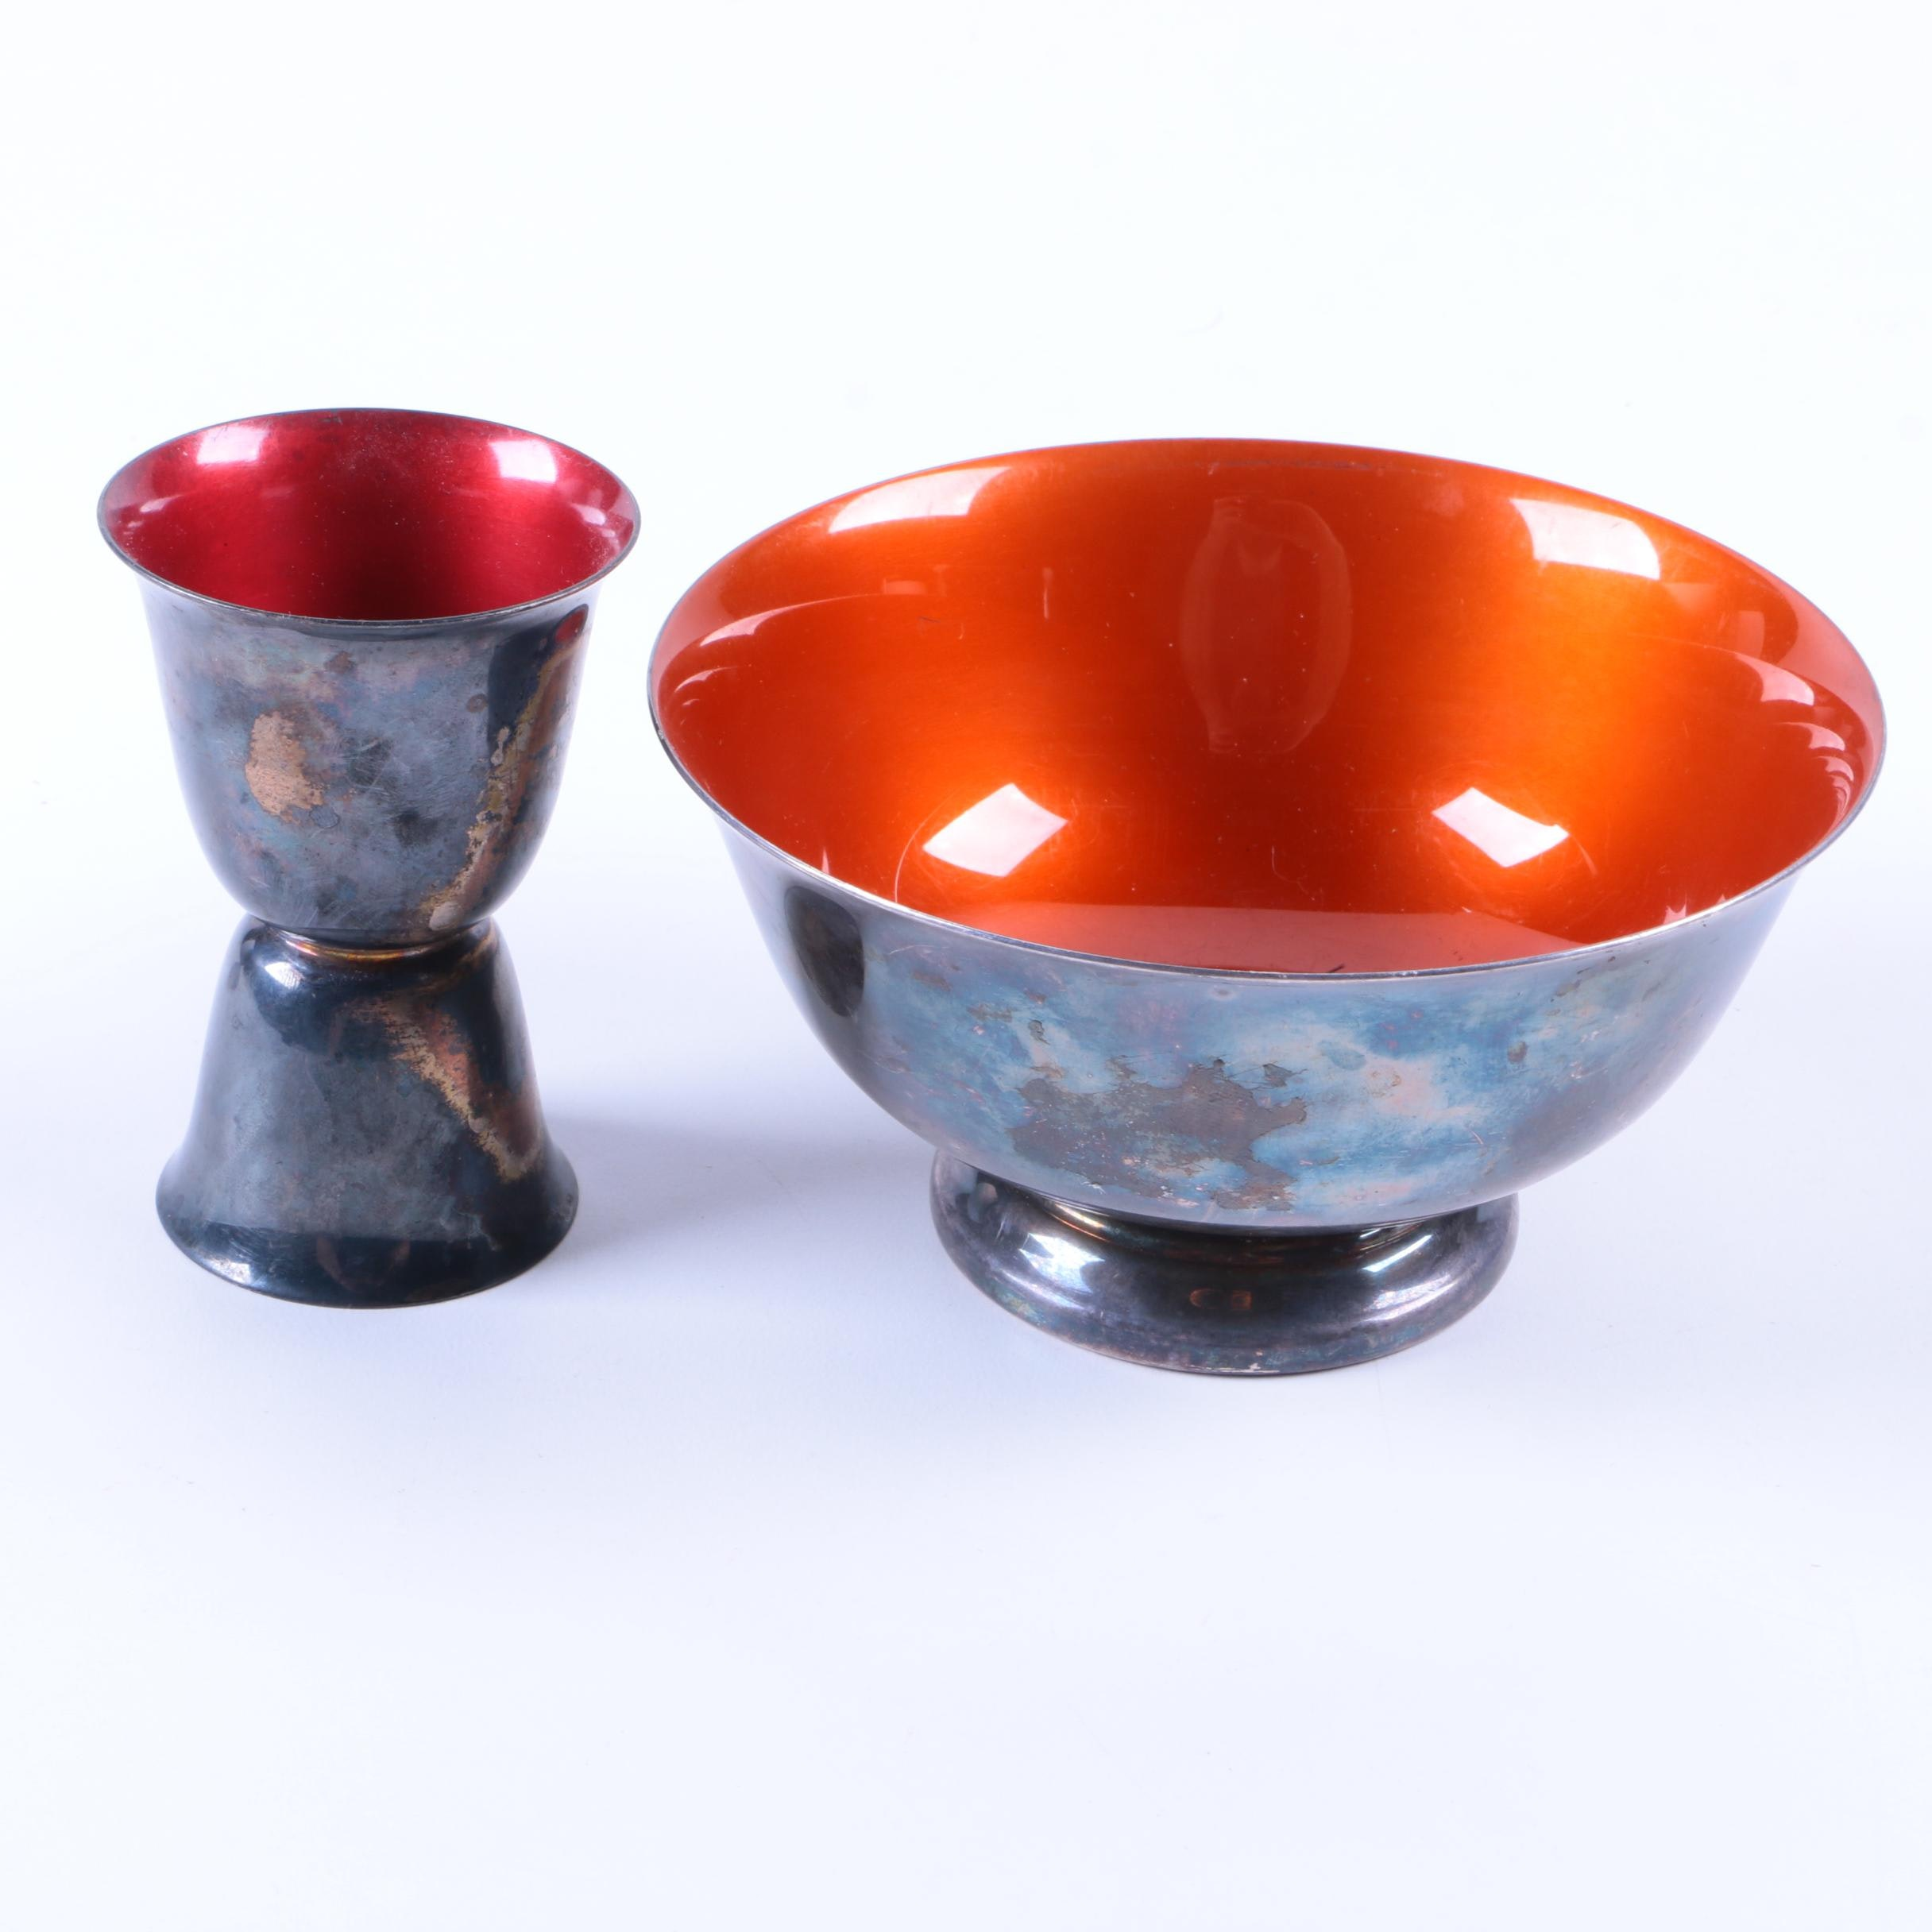 Reed & Barton Silver-Plated Jigger and Bowl with Enameled Interiors